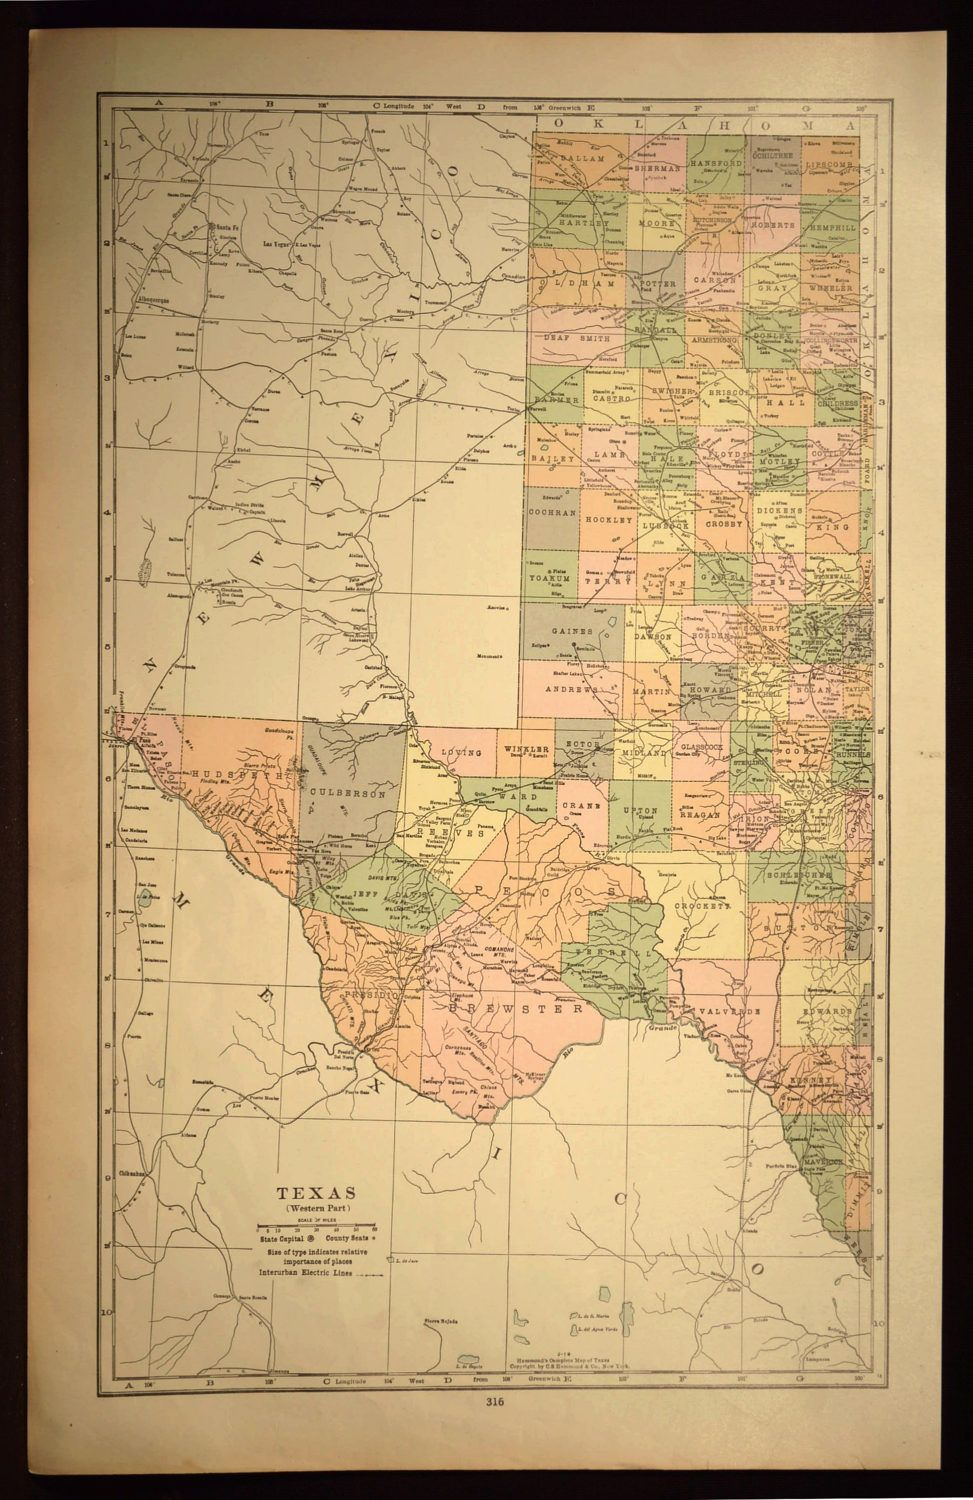 West Texas Map Of Texas Wall Art Decor Large Western Gift Idea Gift - Texas Map Wall Art